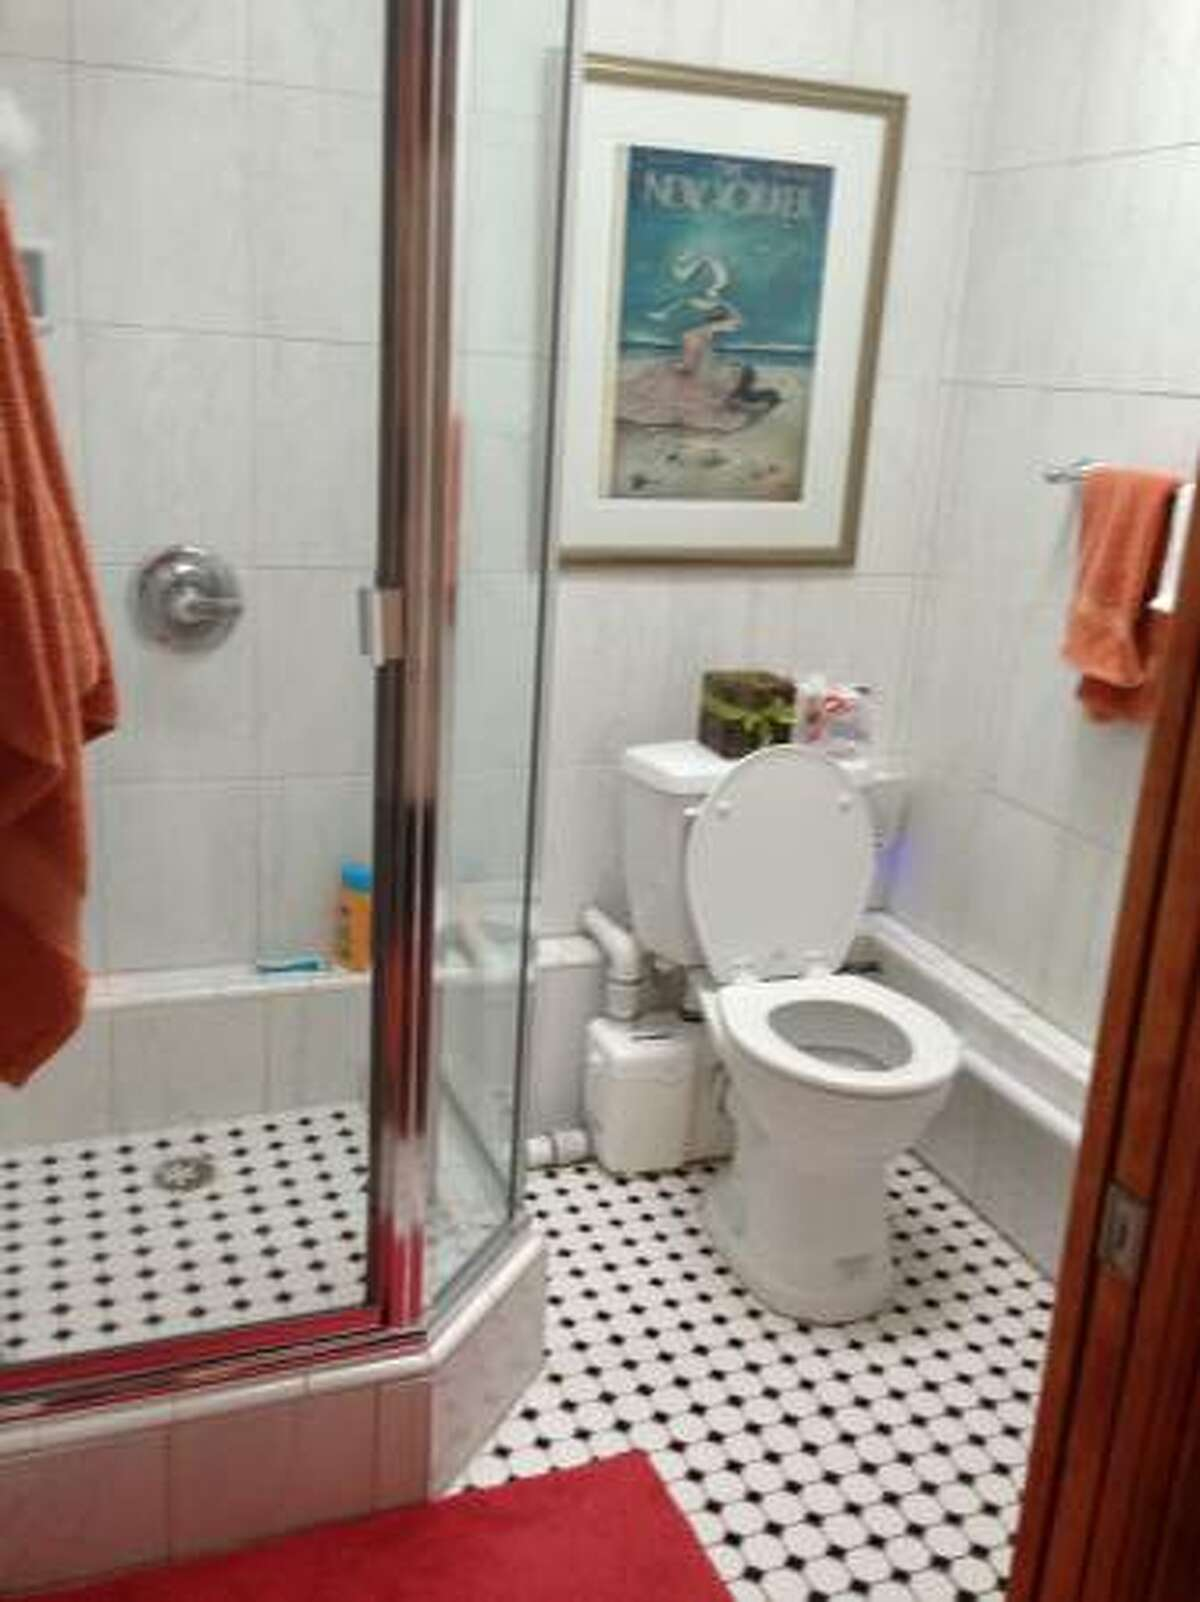 But you get your own bathroom in this Sunset studio. Source: Craigslist